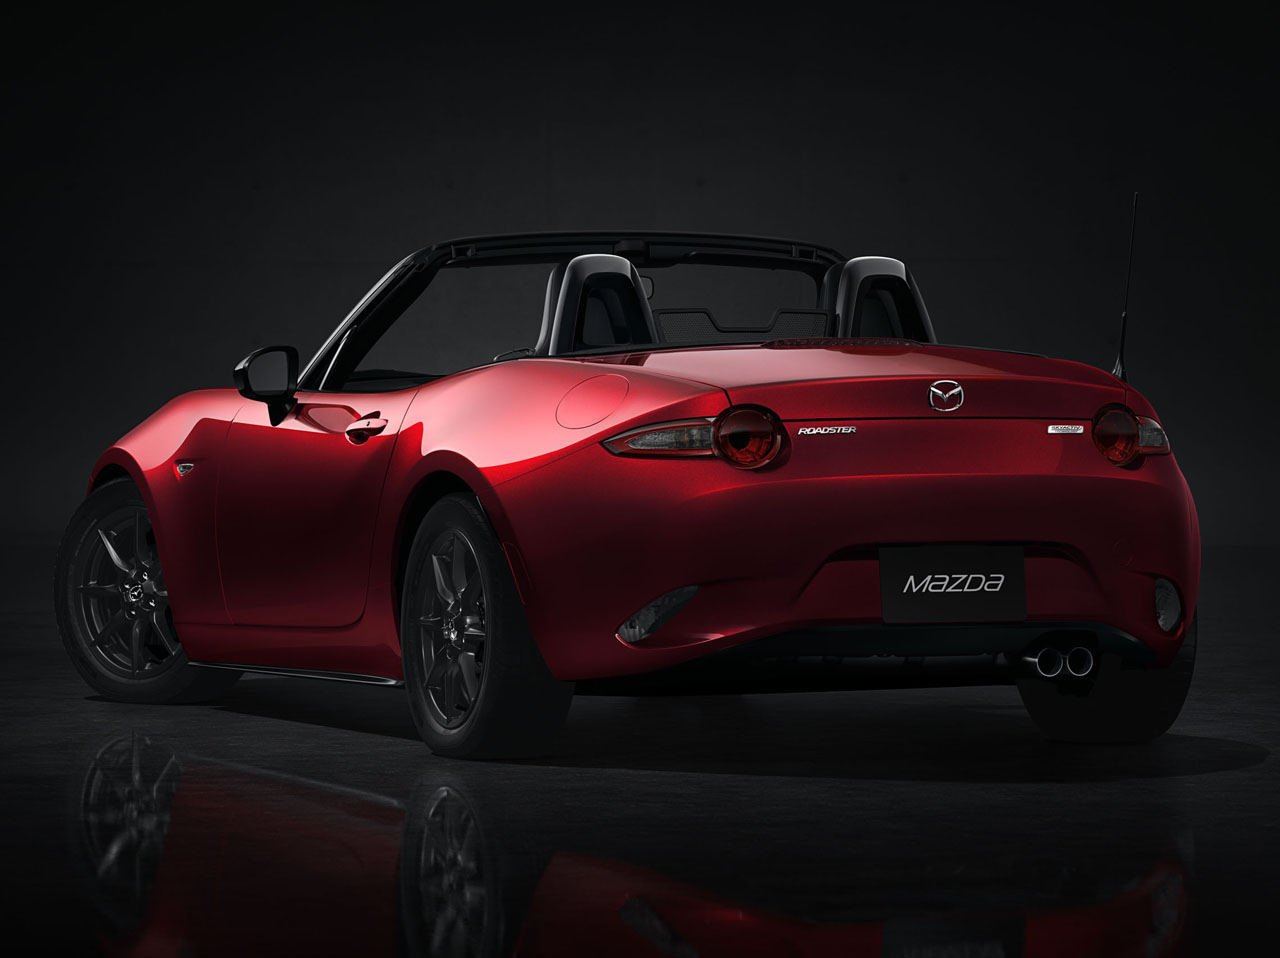 Mazda Mx 5 Nd : all new 2016 mazda mx 5 miata diseno art ~ Aude.kayakingforconservation.com Haus und Dekorationen